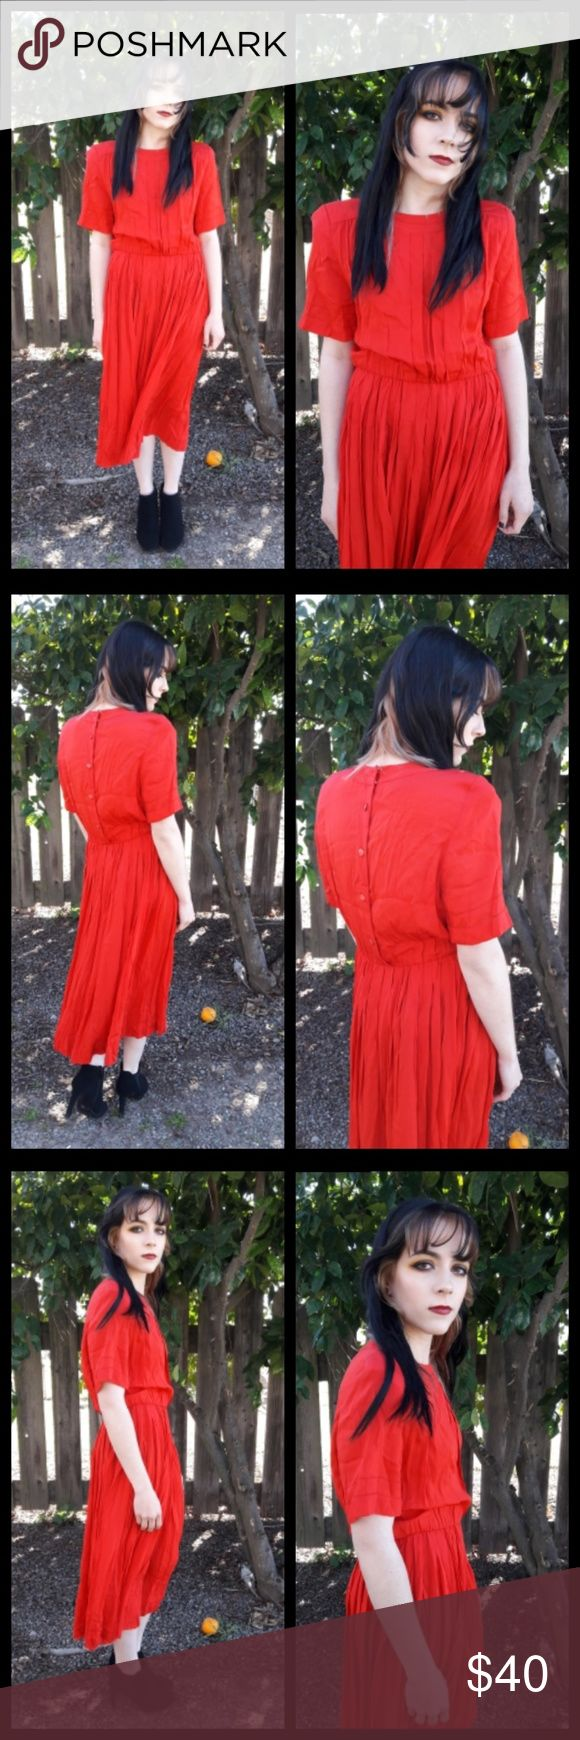 Beautiful vintage 80's pleated red dress! This dress is so Beautiful! Rayon blend so its slightly wrinkled from storage but other than that it's in excellent vintage condition! Dress features a pleated skirt, Structured shoulder, button back and elastic waist. Vintage size 12 petite but please see measurements for proper fit-  Pit to pit: 18 inches  Waist: 12 to 15 inches  Hip: free Length: 46 inches   All measurements taken lying flat 💖 Vintage Dresses Midi